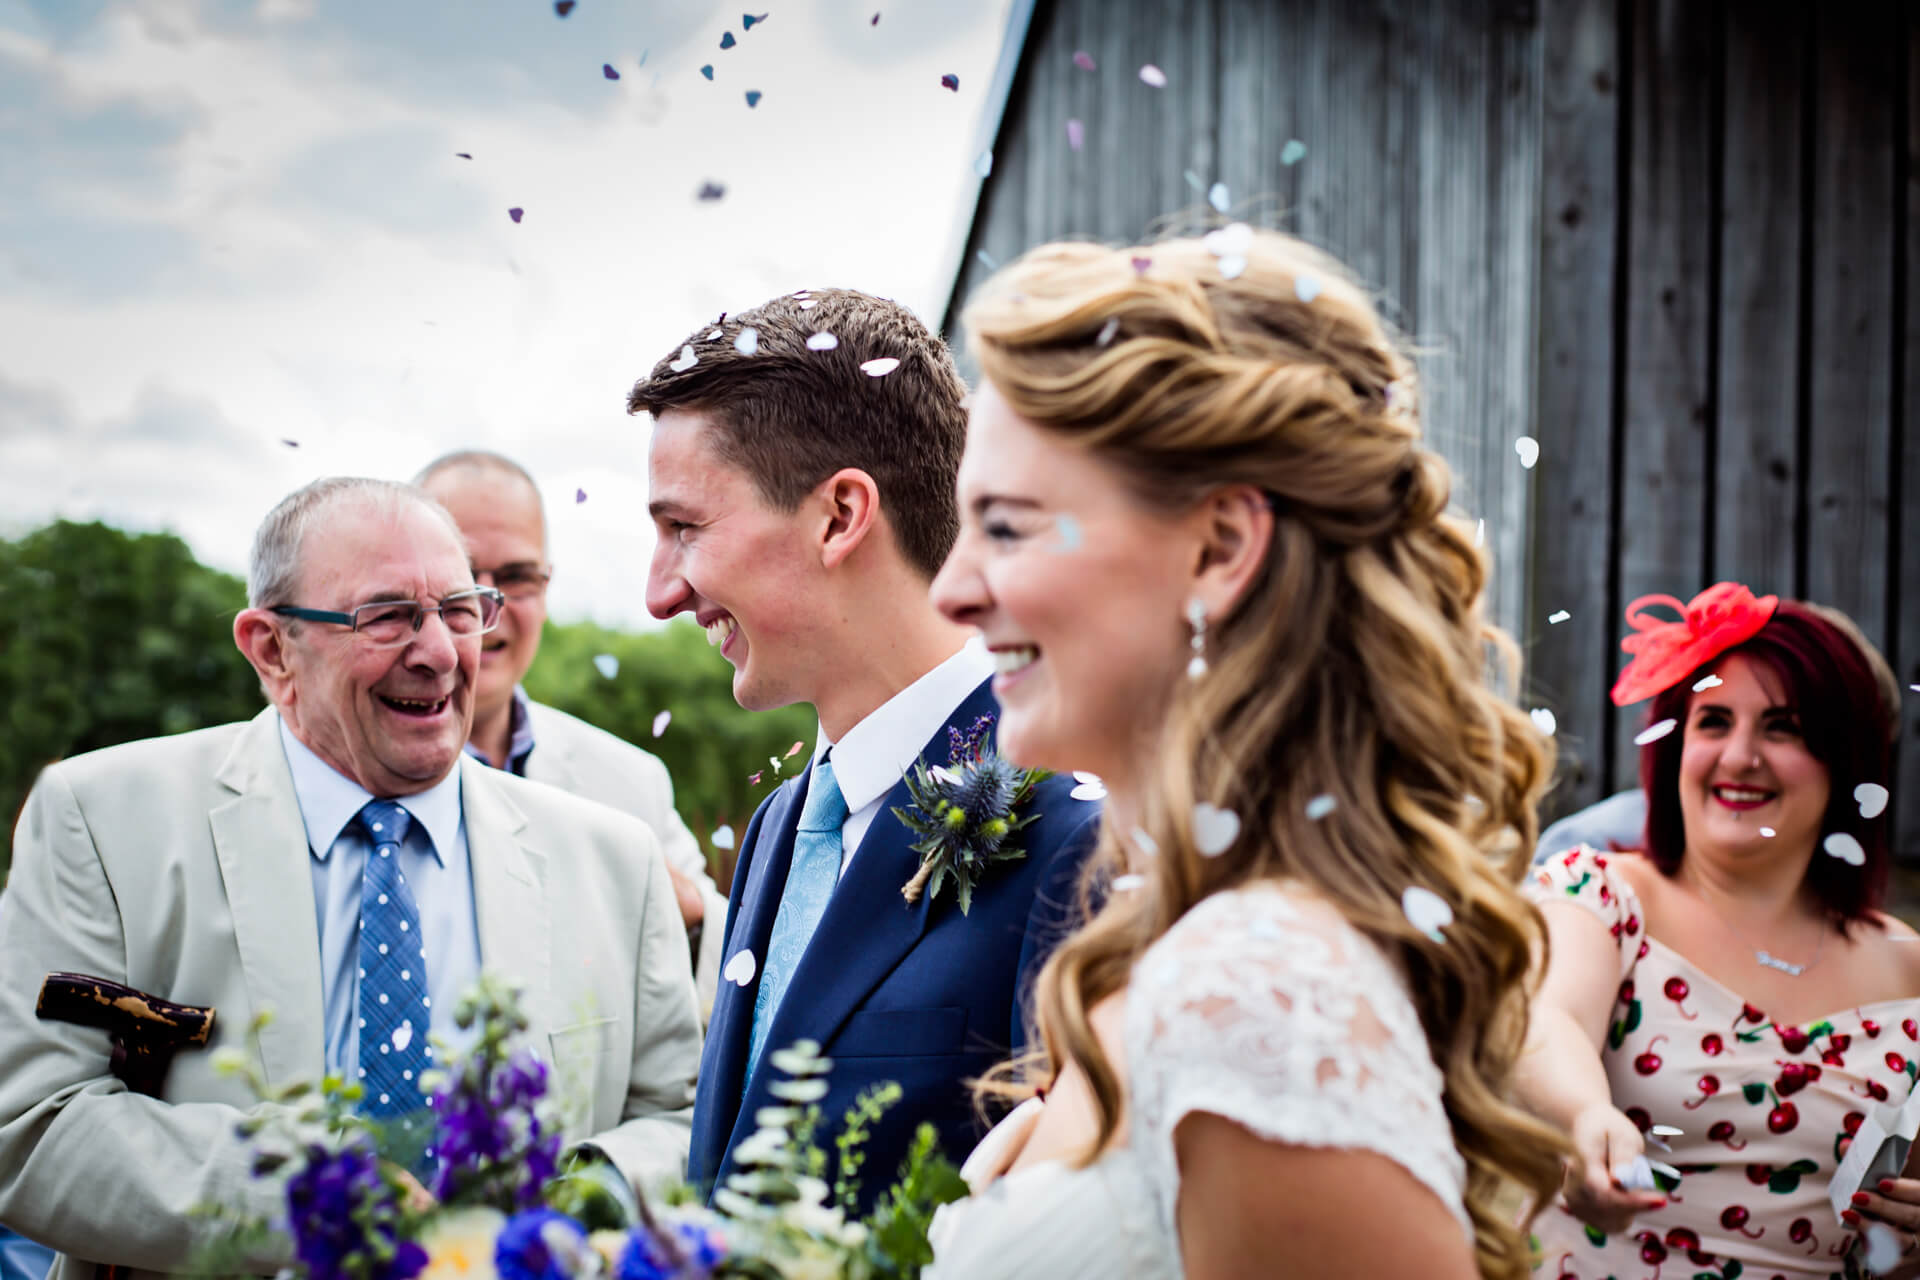 guests smile at the wedding couple as they throw confetti